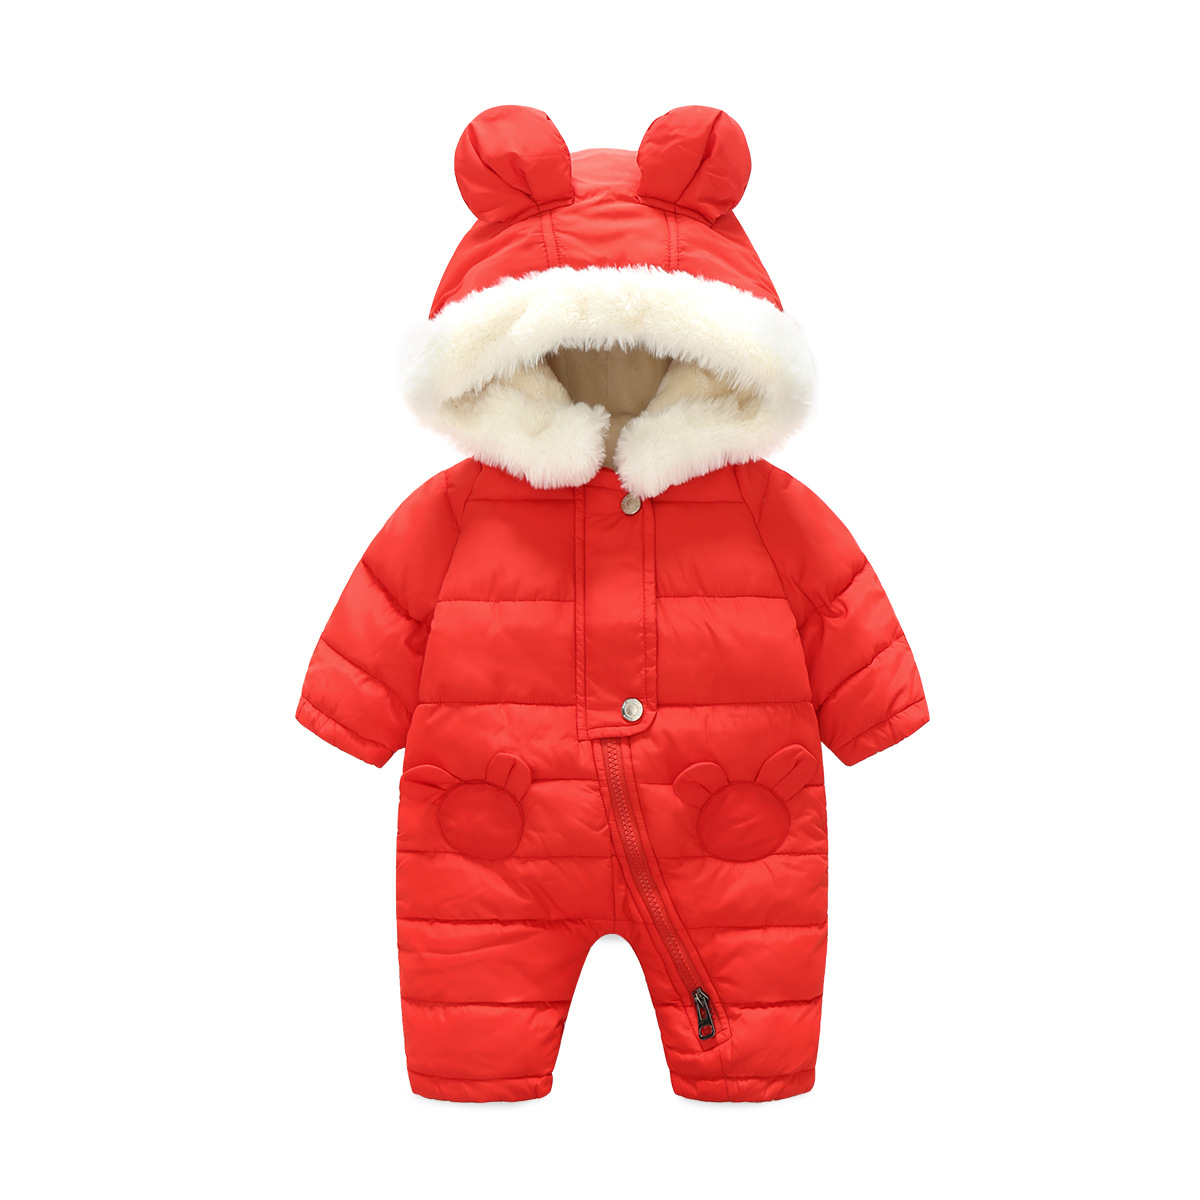 Snow Wear Overalls for Kids Baby Girl Children Winter Jumpsuit Baby Snowsuit Girl Winter Red Romper 2017 Warm Hoodie Winter 2016 winter boys ski suit set children s snowsuit for baby girl snow overalls ntural fur down jackets trousers clothing sets